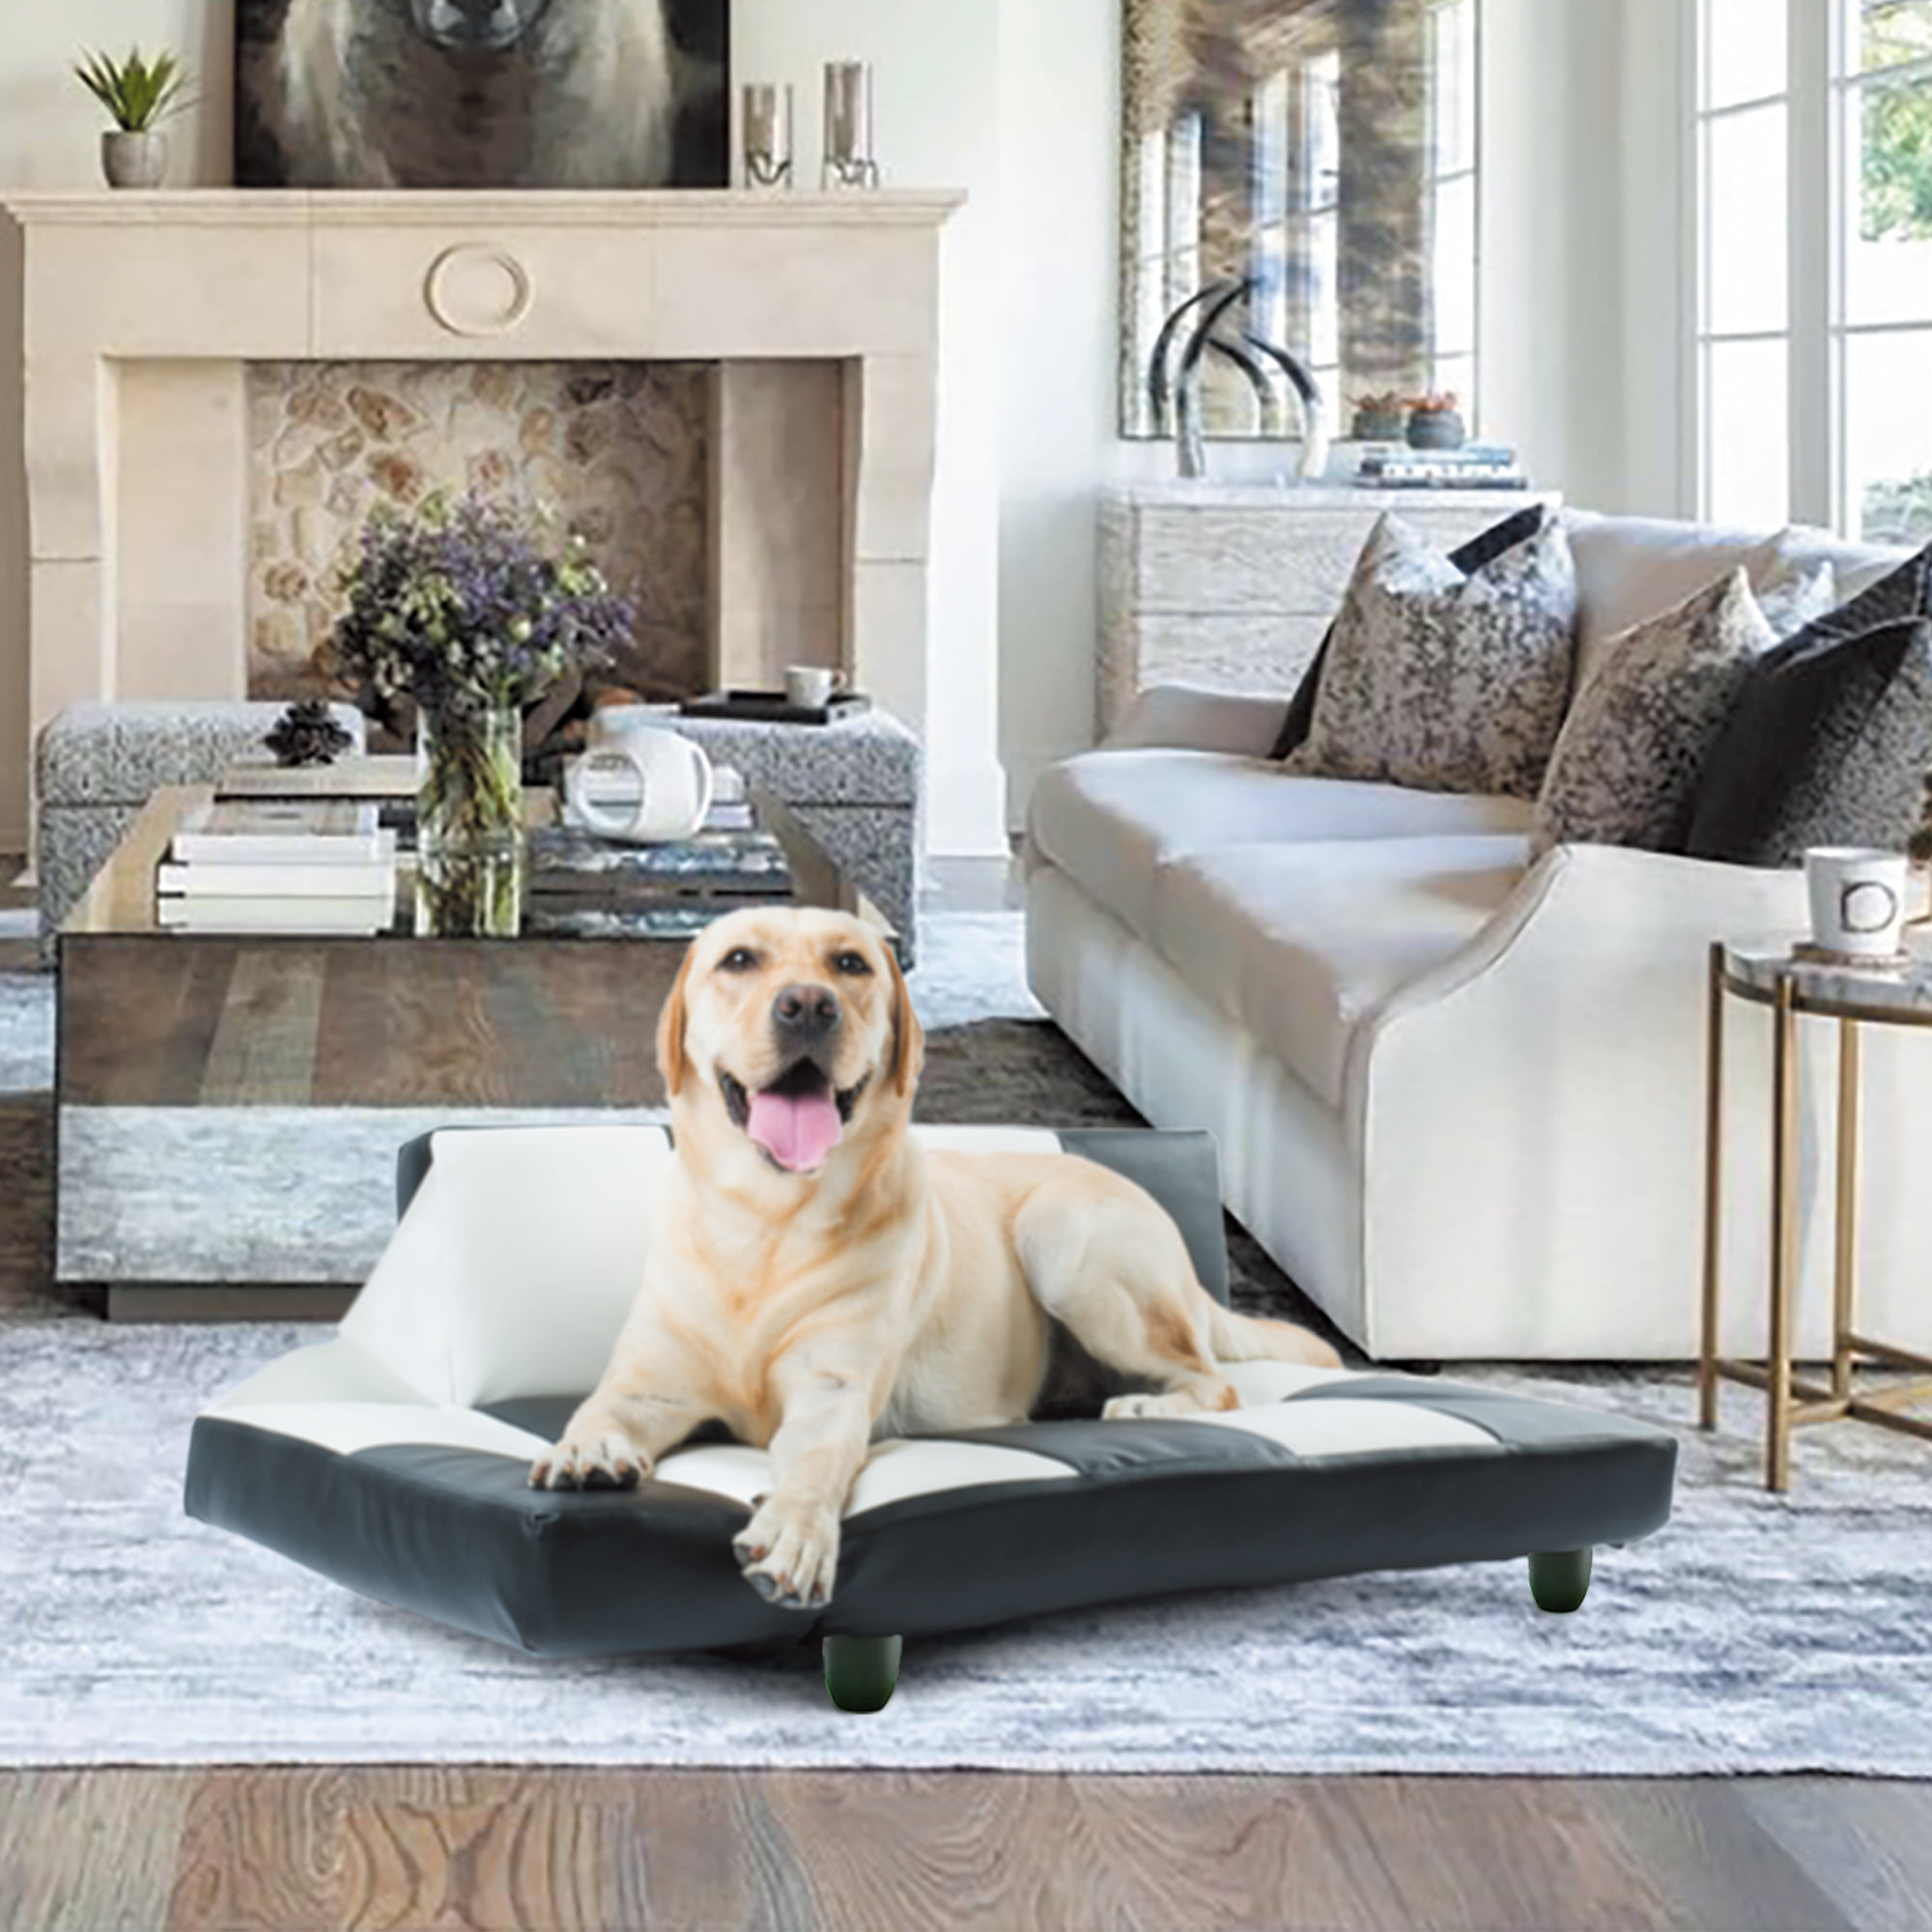 Indoor Pet Dog Sofa Bed Sturdy Chaise Style Large Dog Beds With Soft Pu Leather Cover Orthopedic Ultra Plush Sofa Style Couch Pet Bed For Large Dogs Cats Elderly Dogs Or Puppies 220 5lbs S978